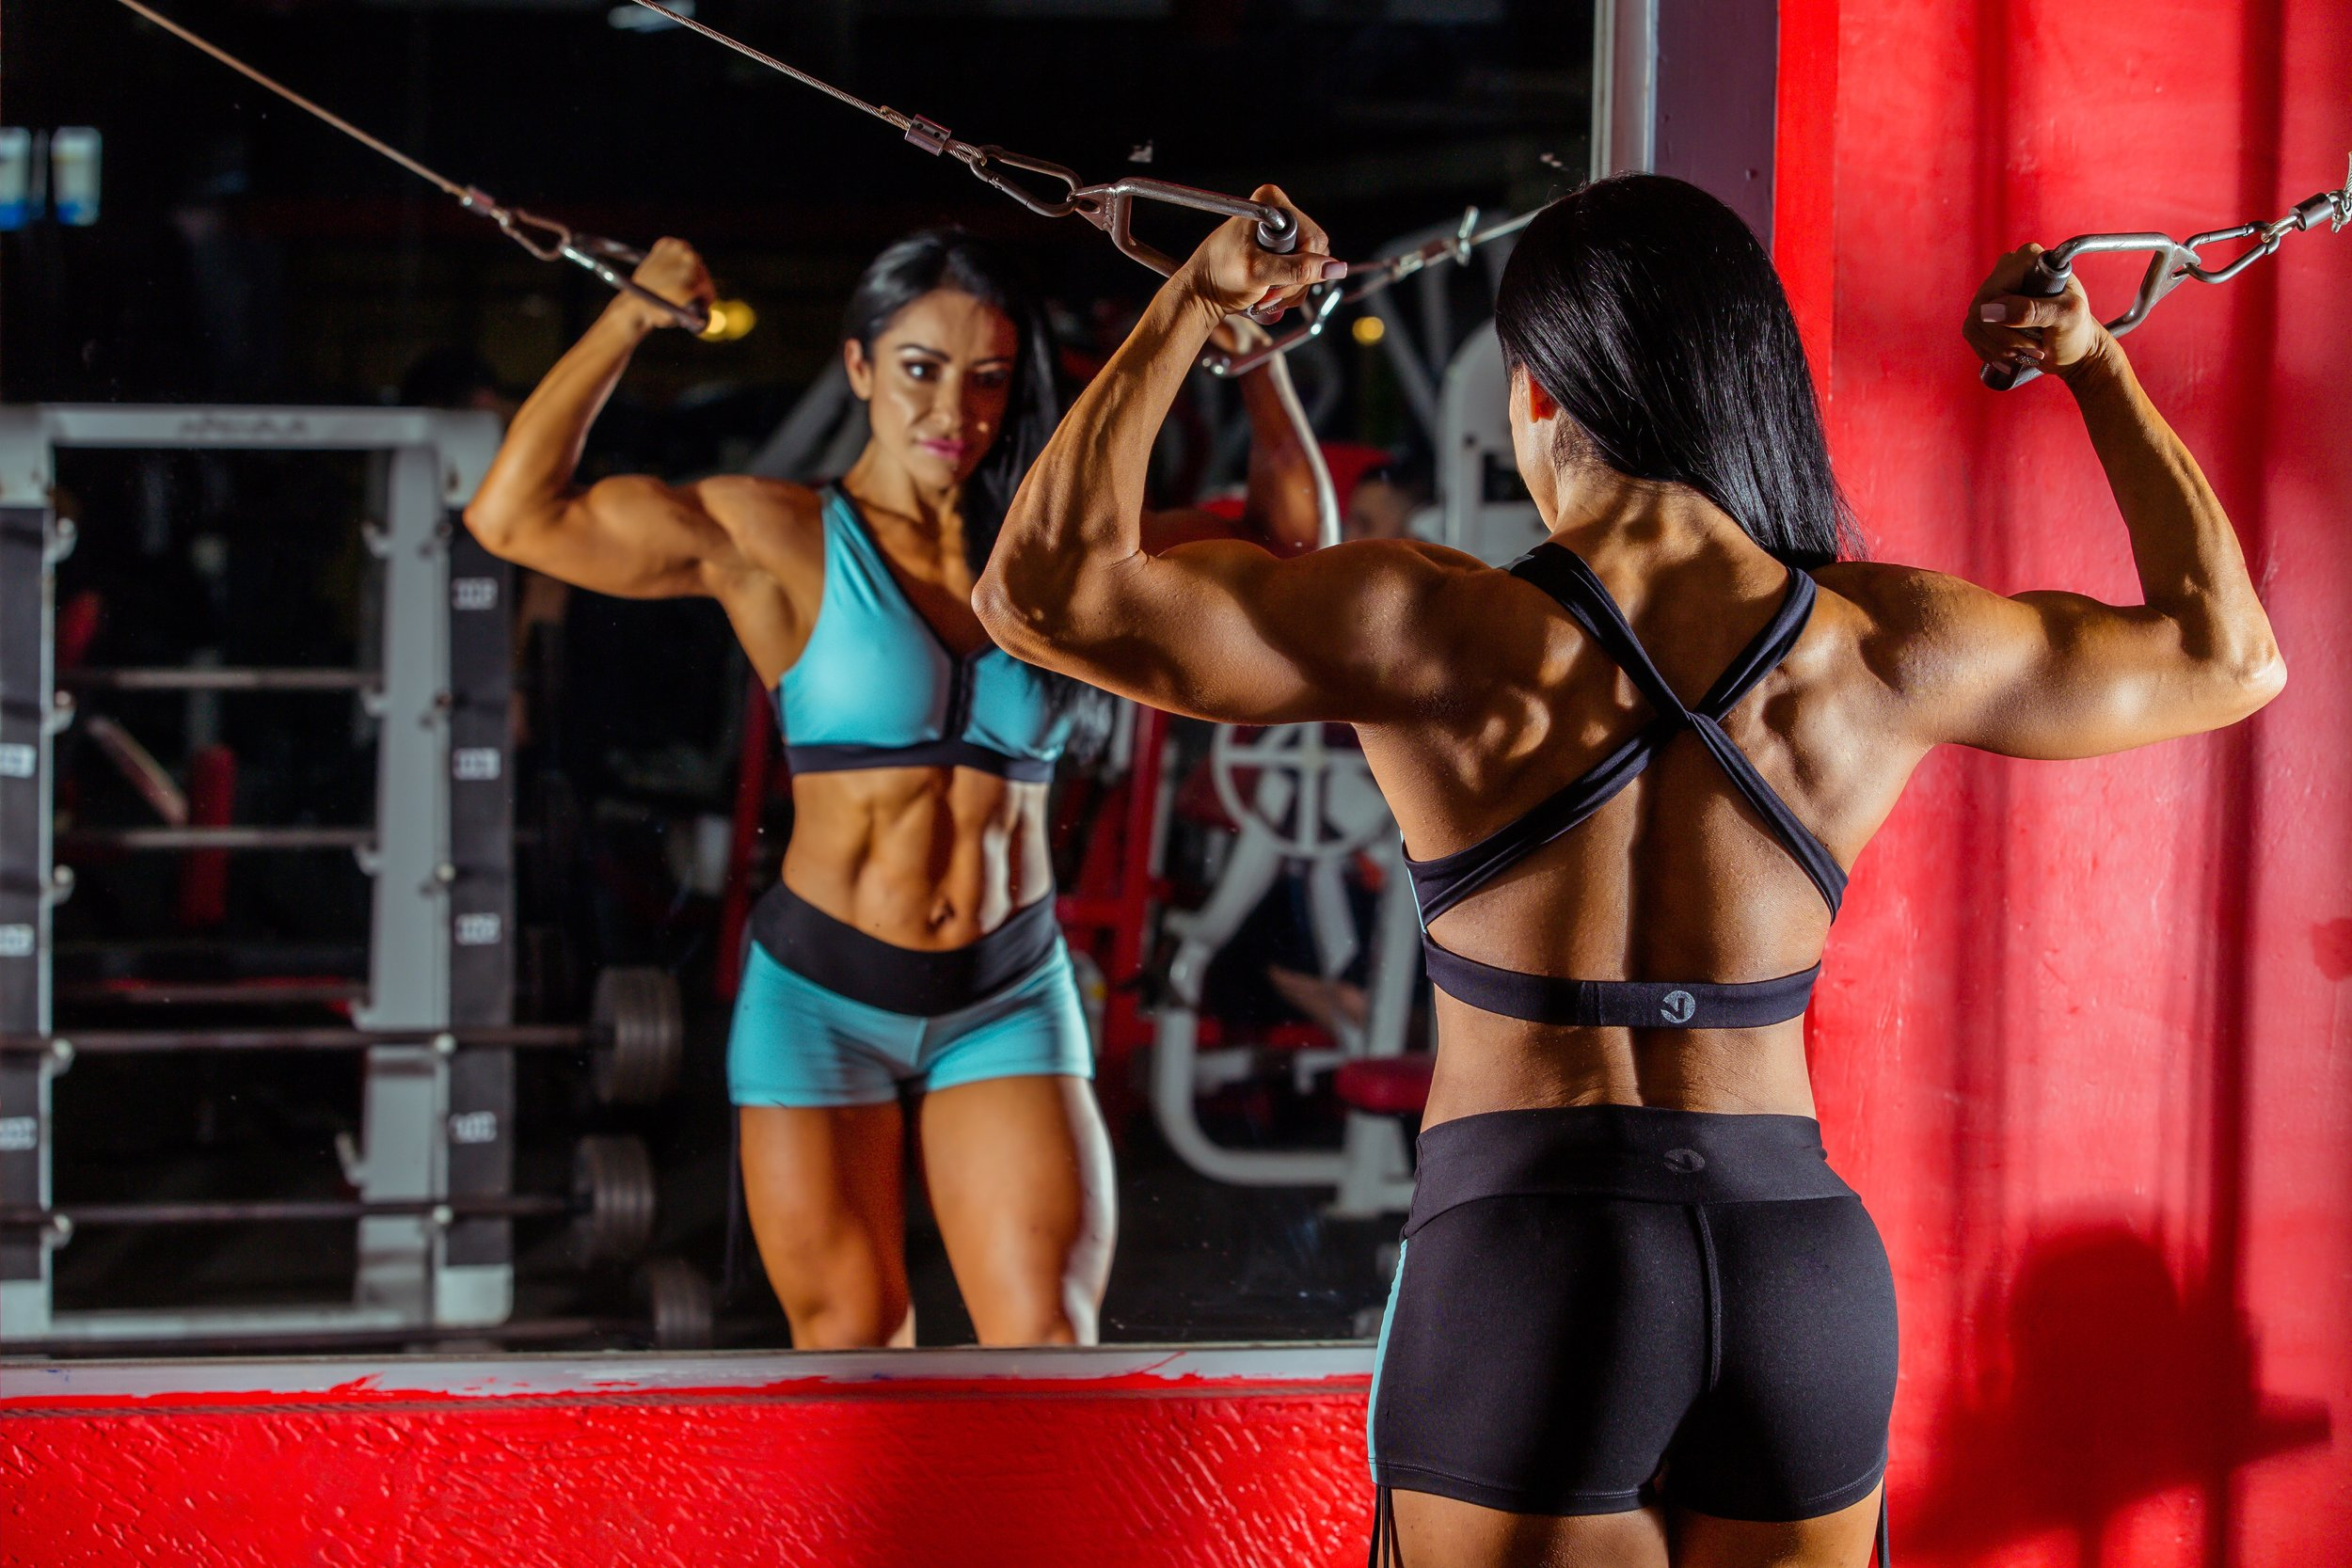 Is your target member a bodybuilder or a casual gym-goer? Going after the right prospects is as important in a social marketing strategy as it is offline.